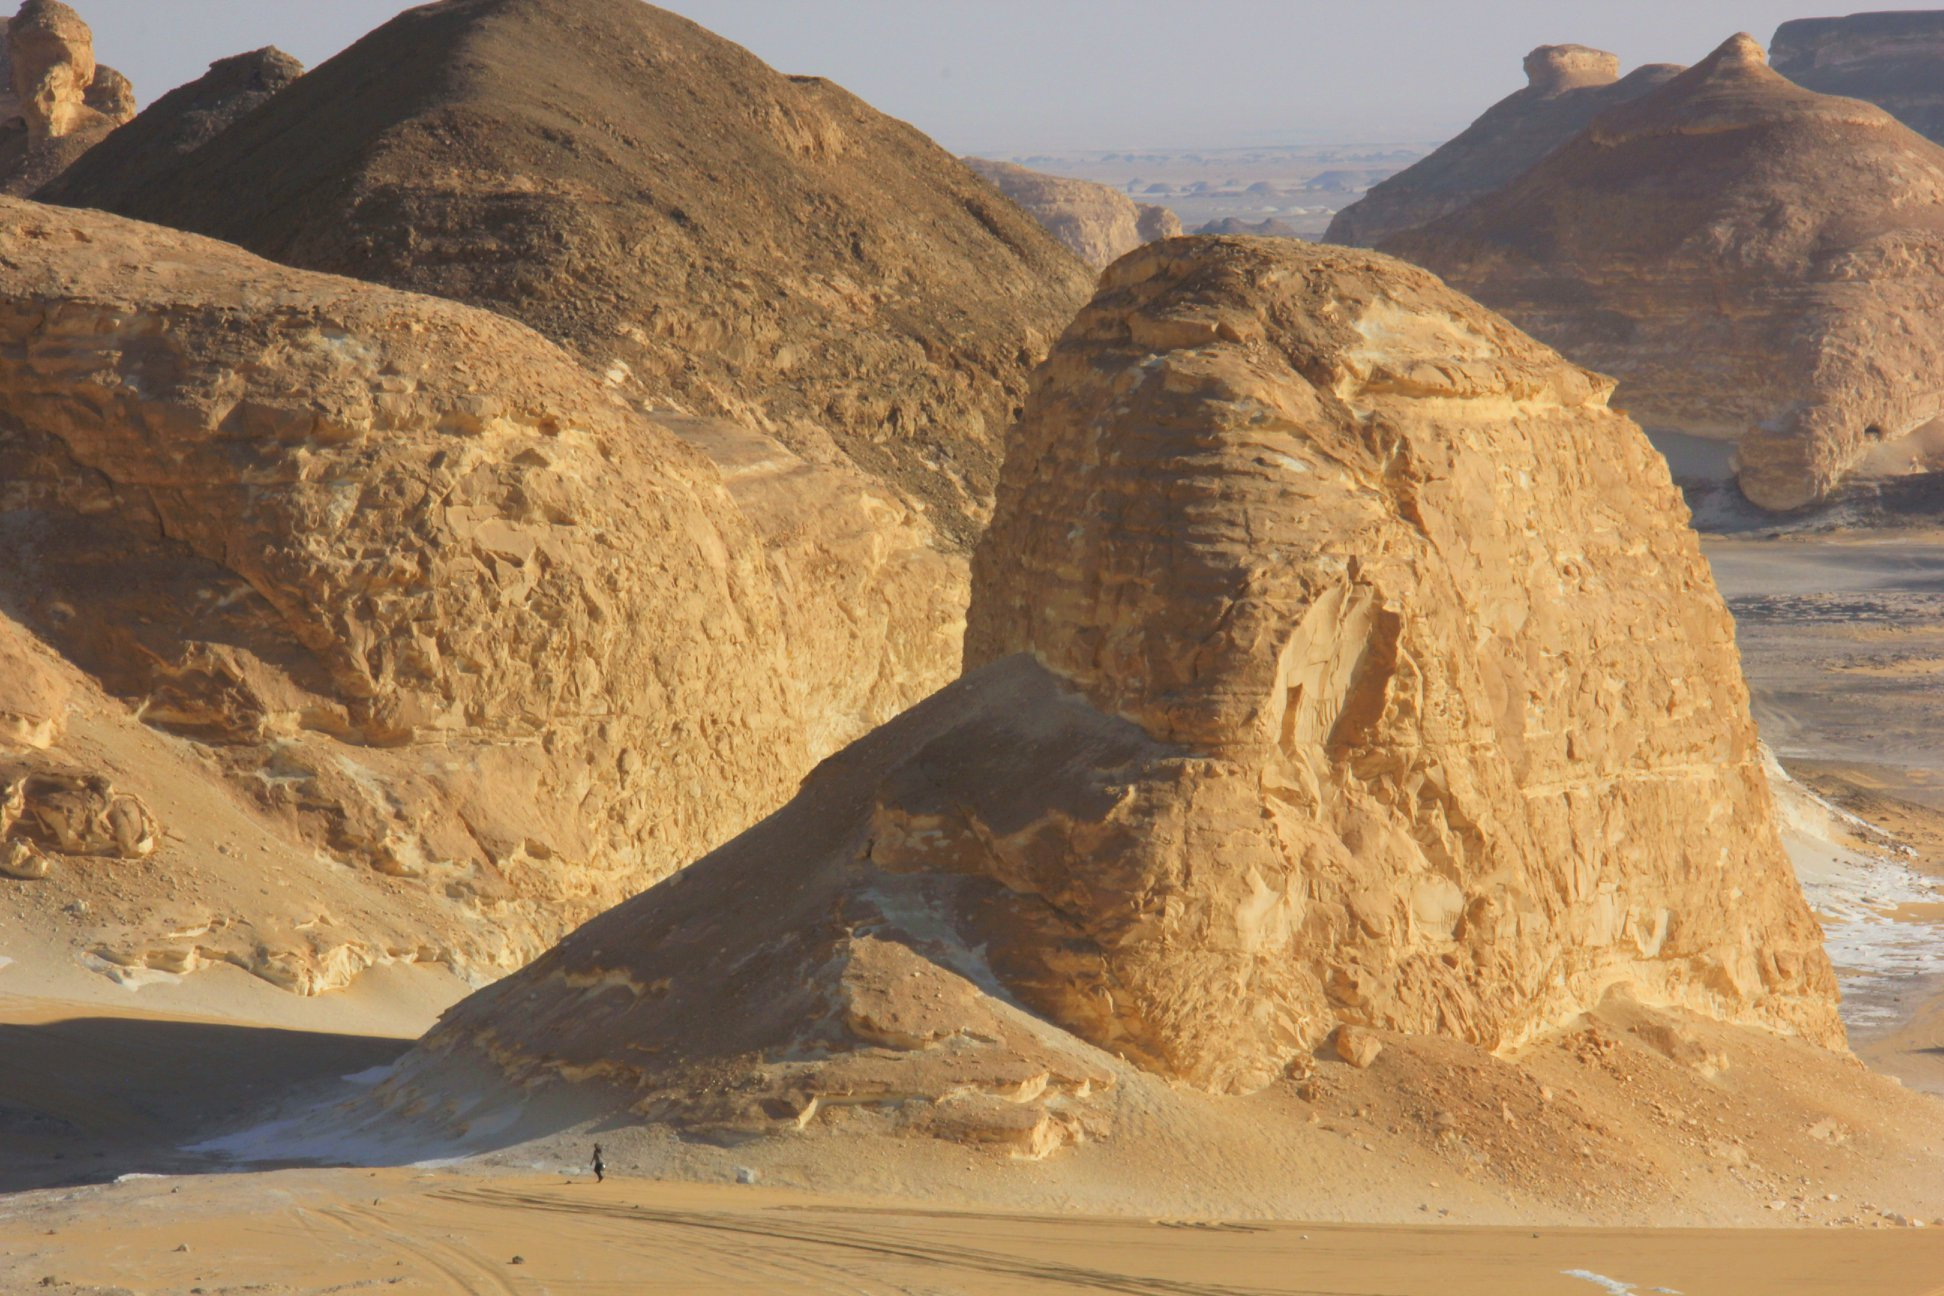 agbat near the black desert in egypt